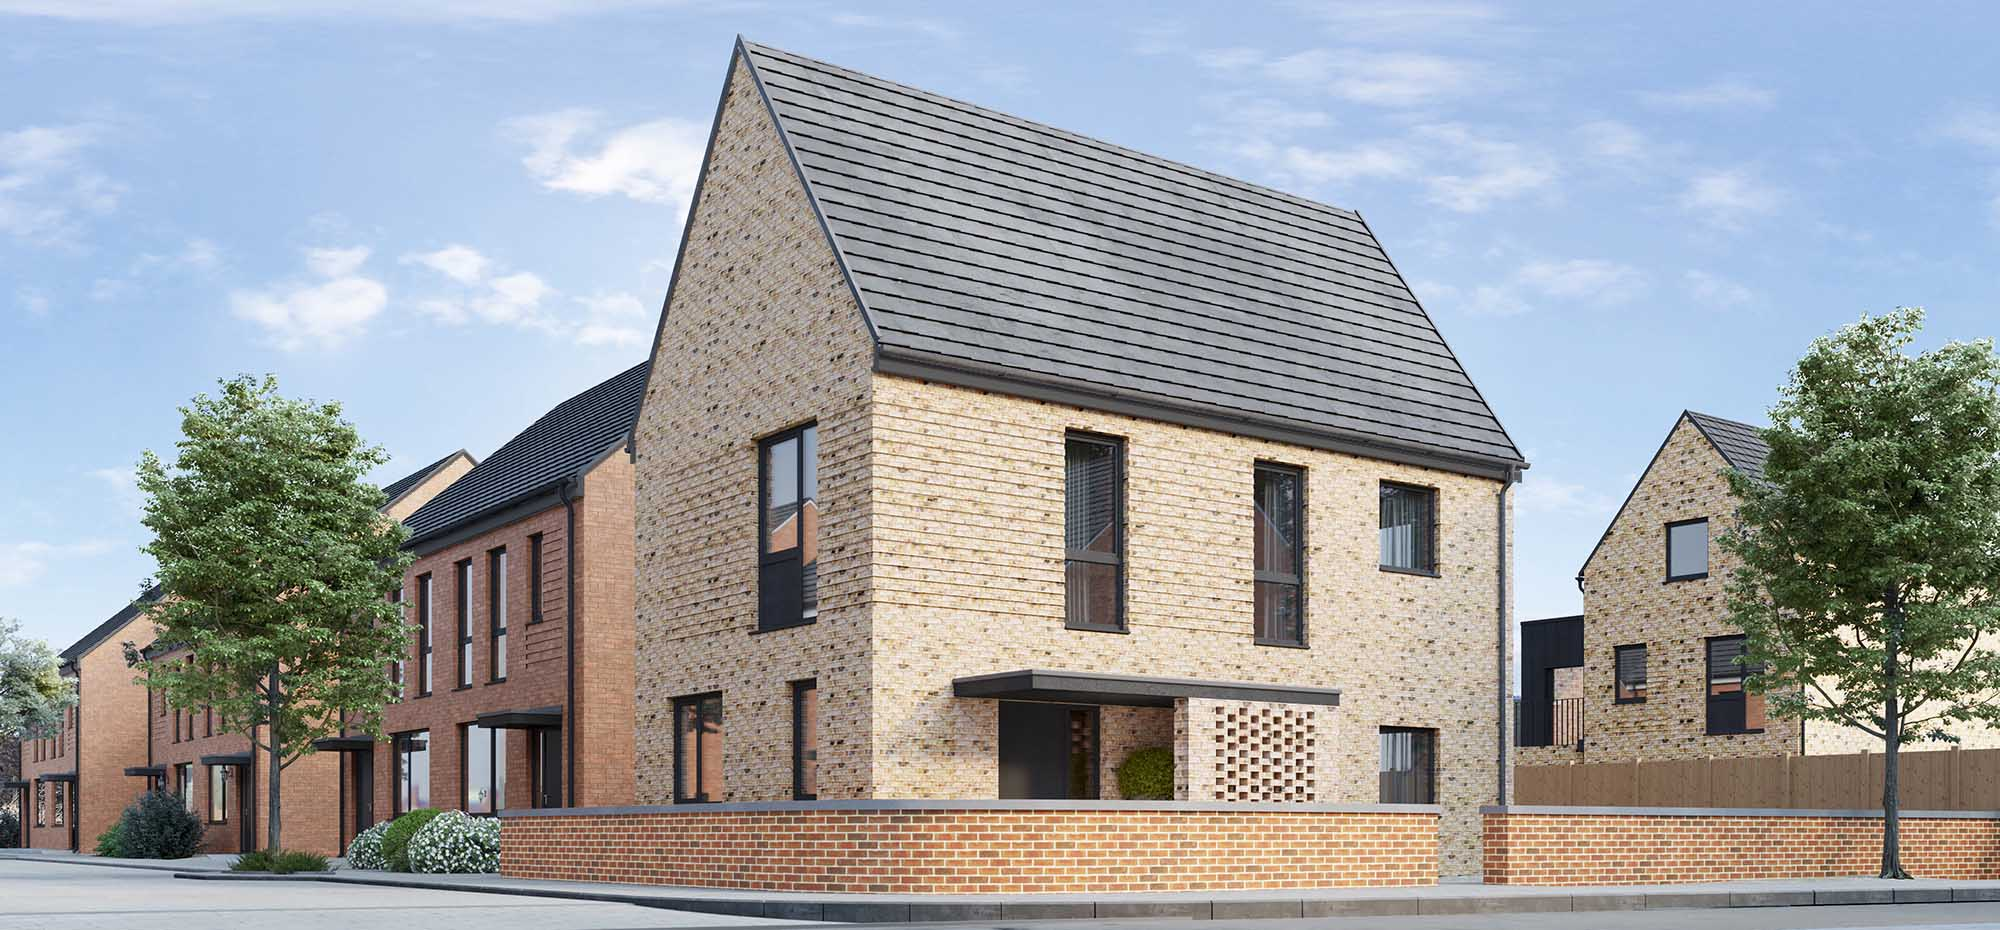 This image shows an external view of the Sage three bedroom, detached house from Shape Homes York